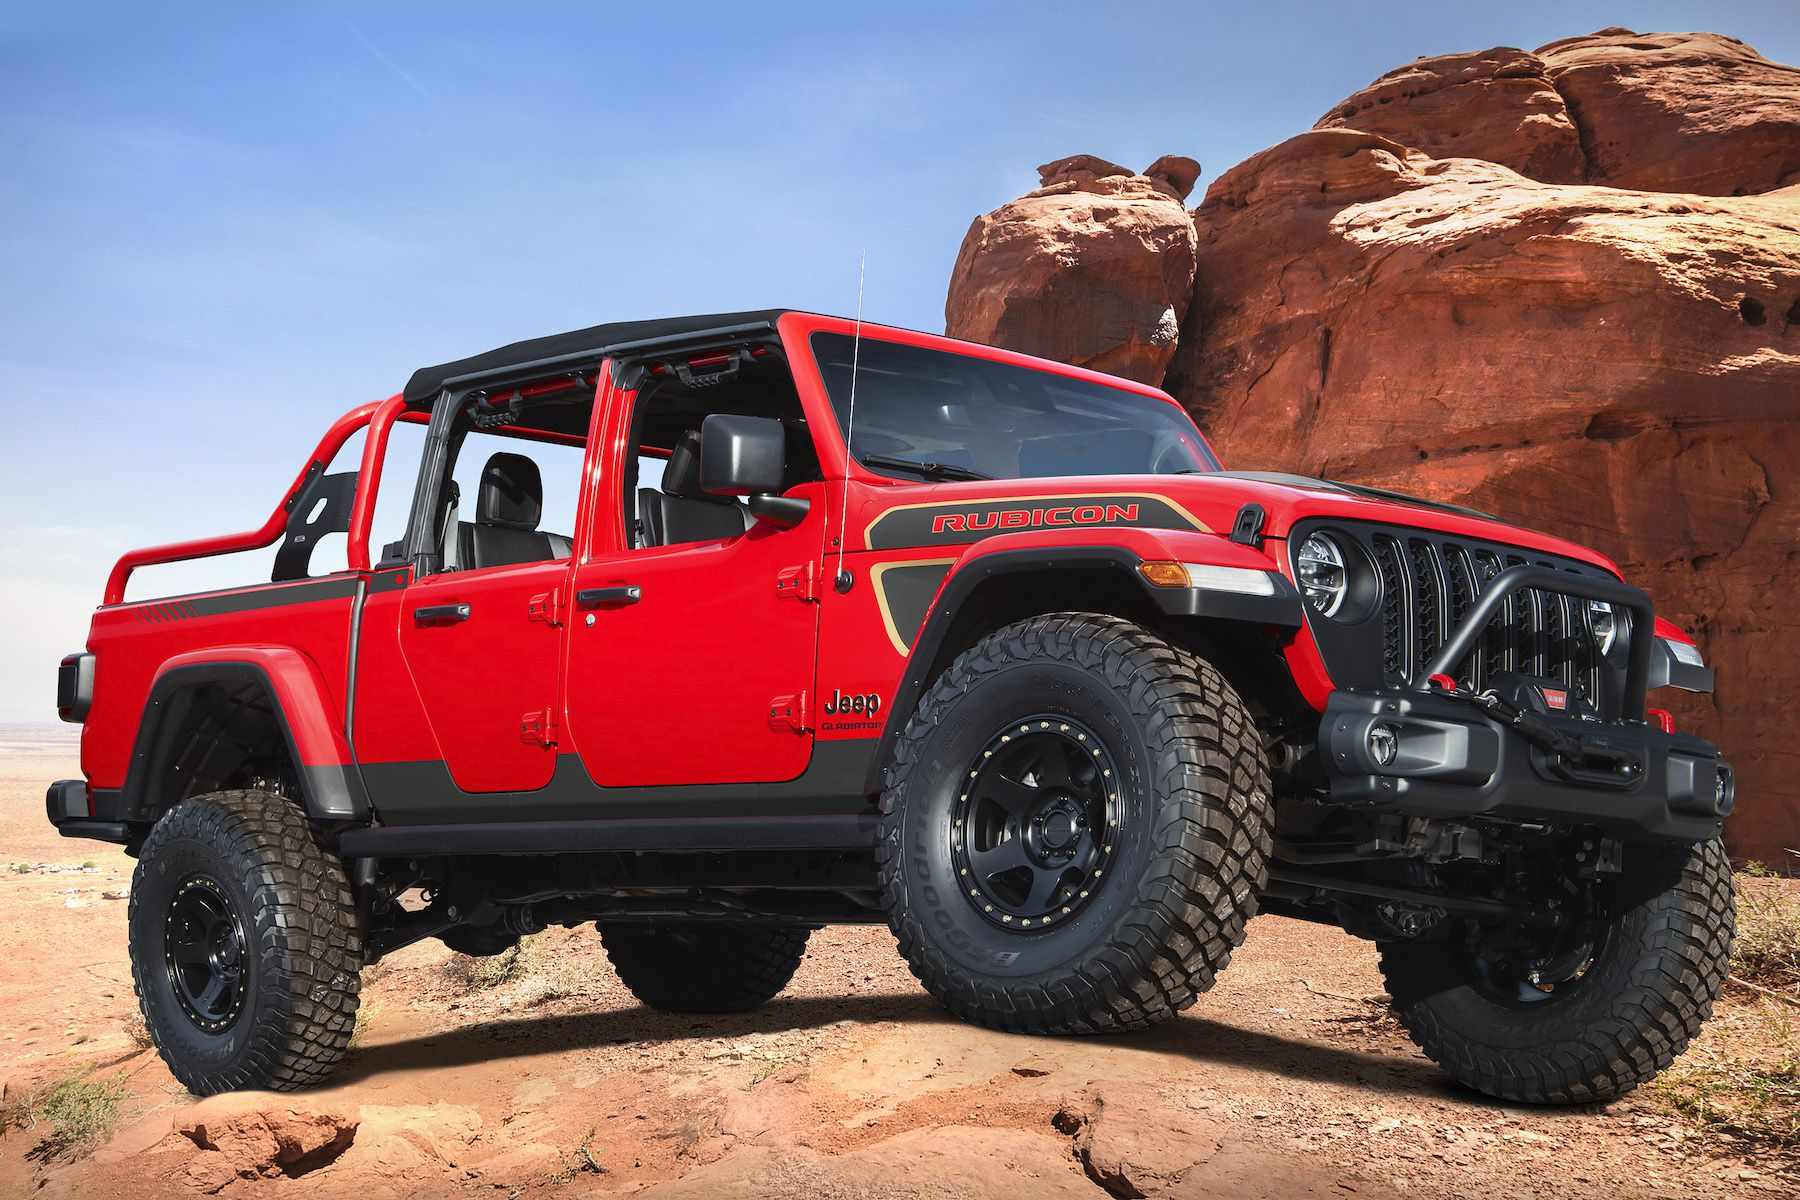 Jeep Red Bare Gladiator Rubicon